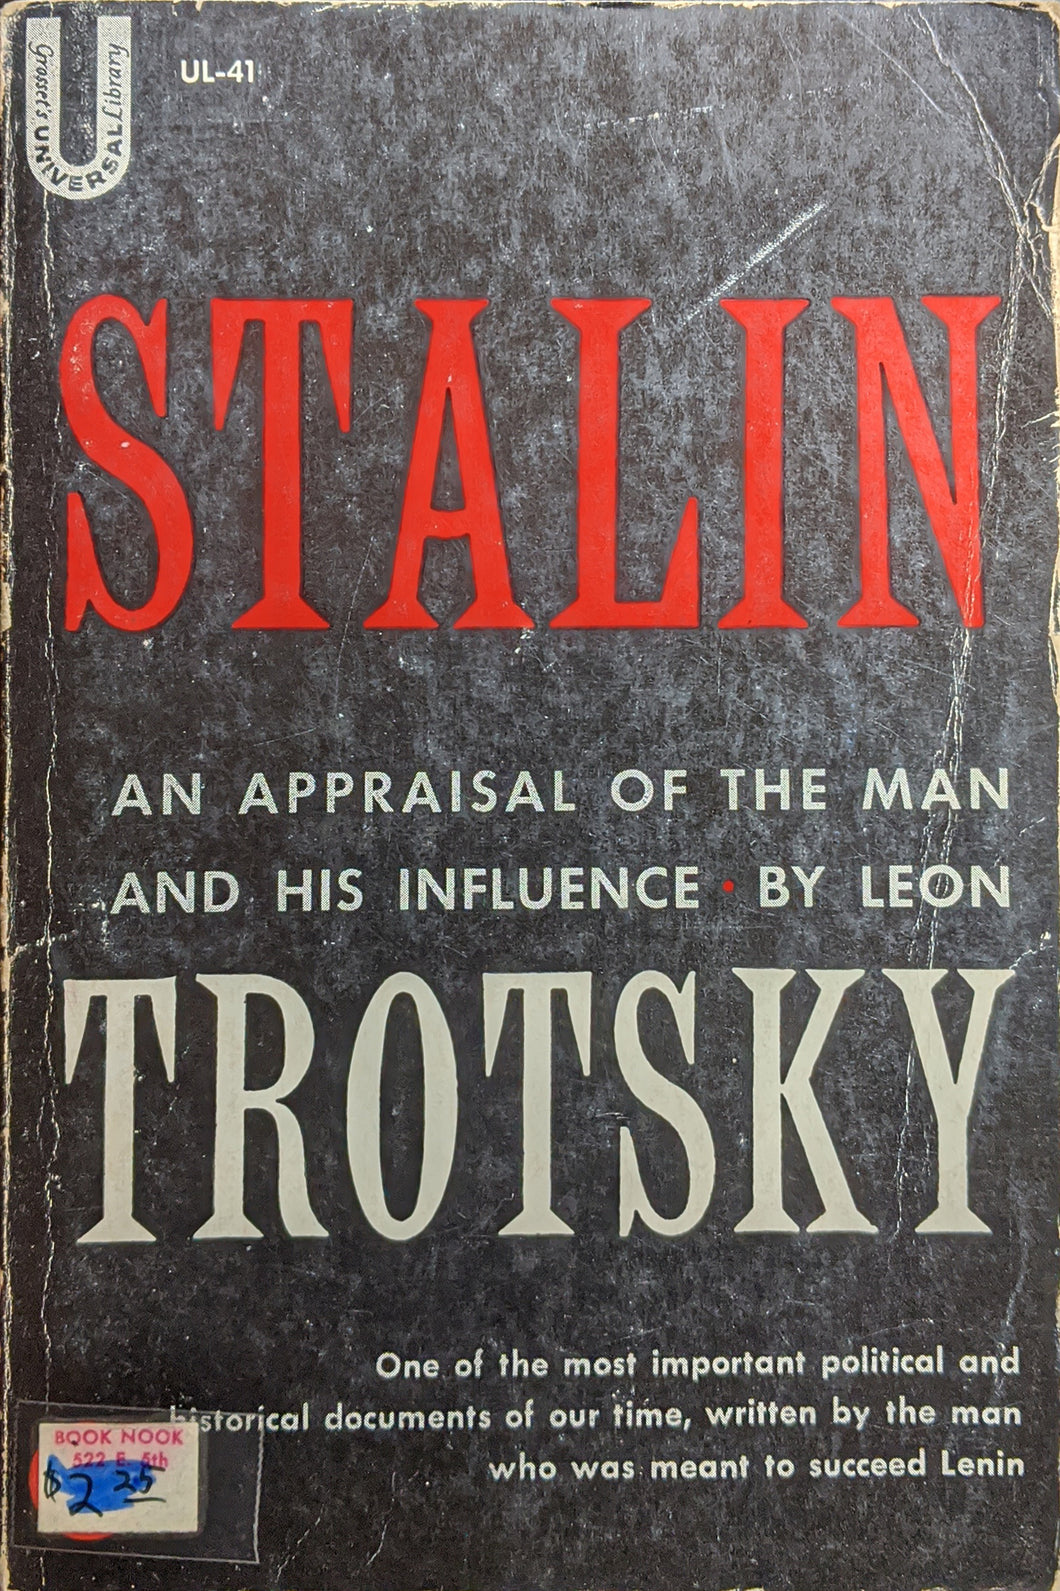 Stalin: An Appraisal of the Man and His Influence